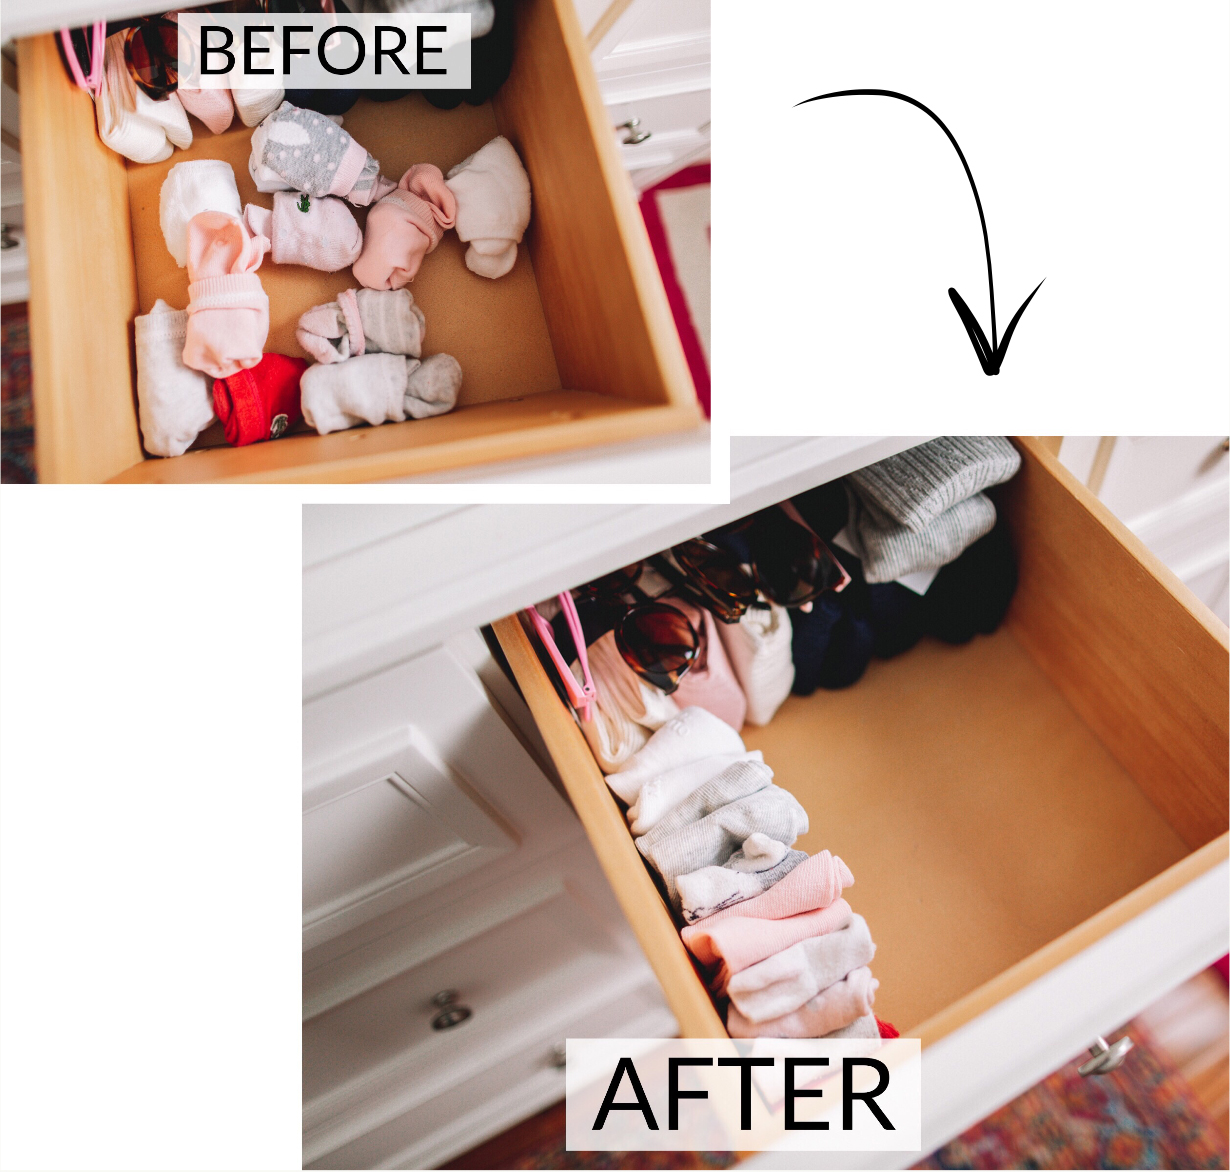 How to KonMari Kids' Room - Before and After